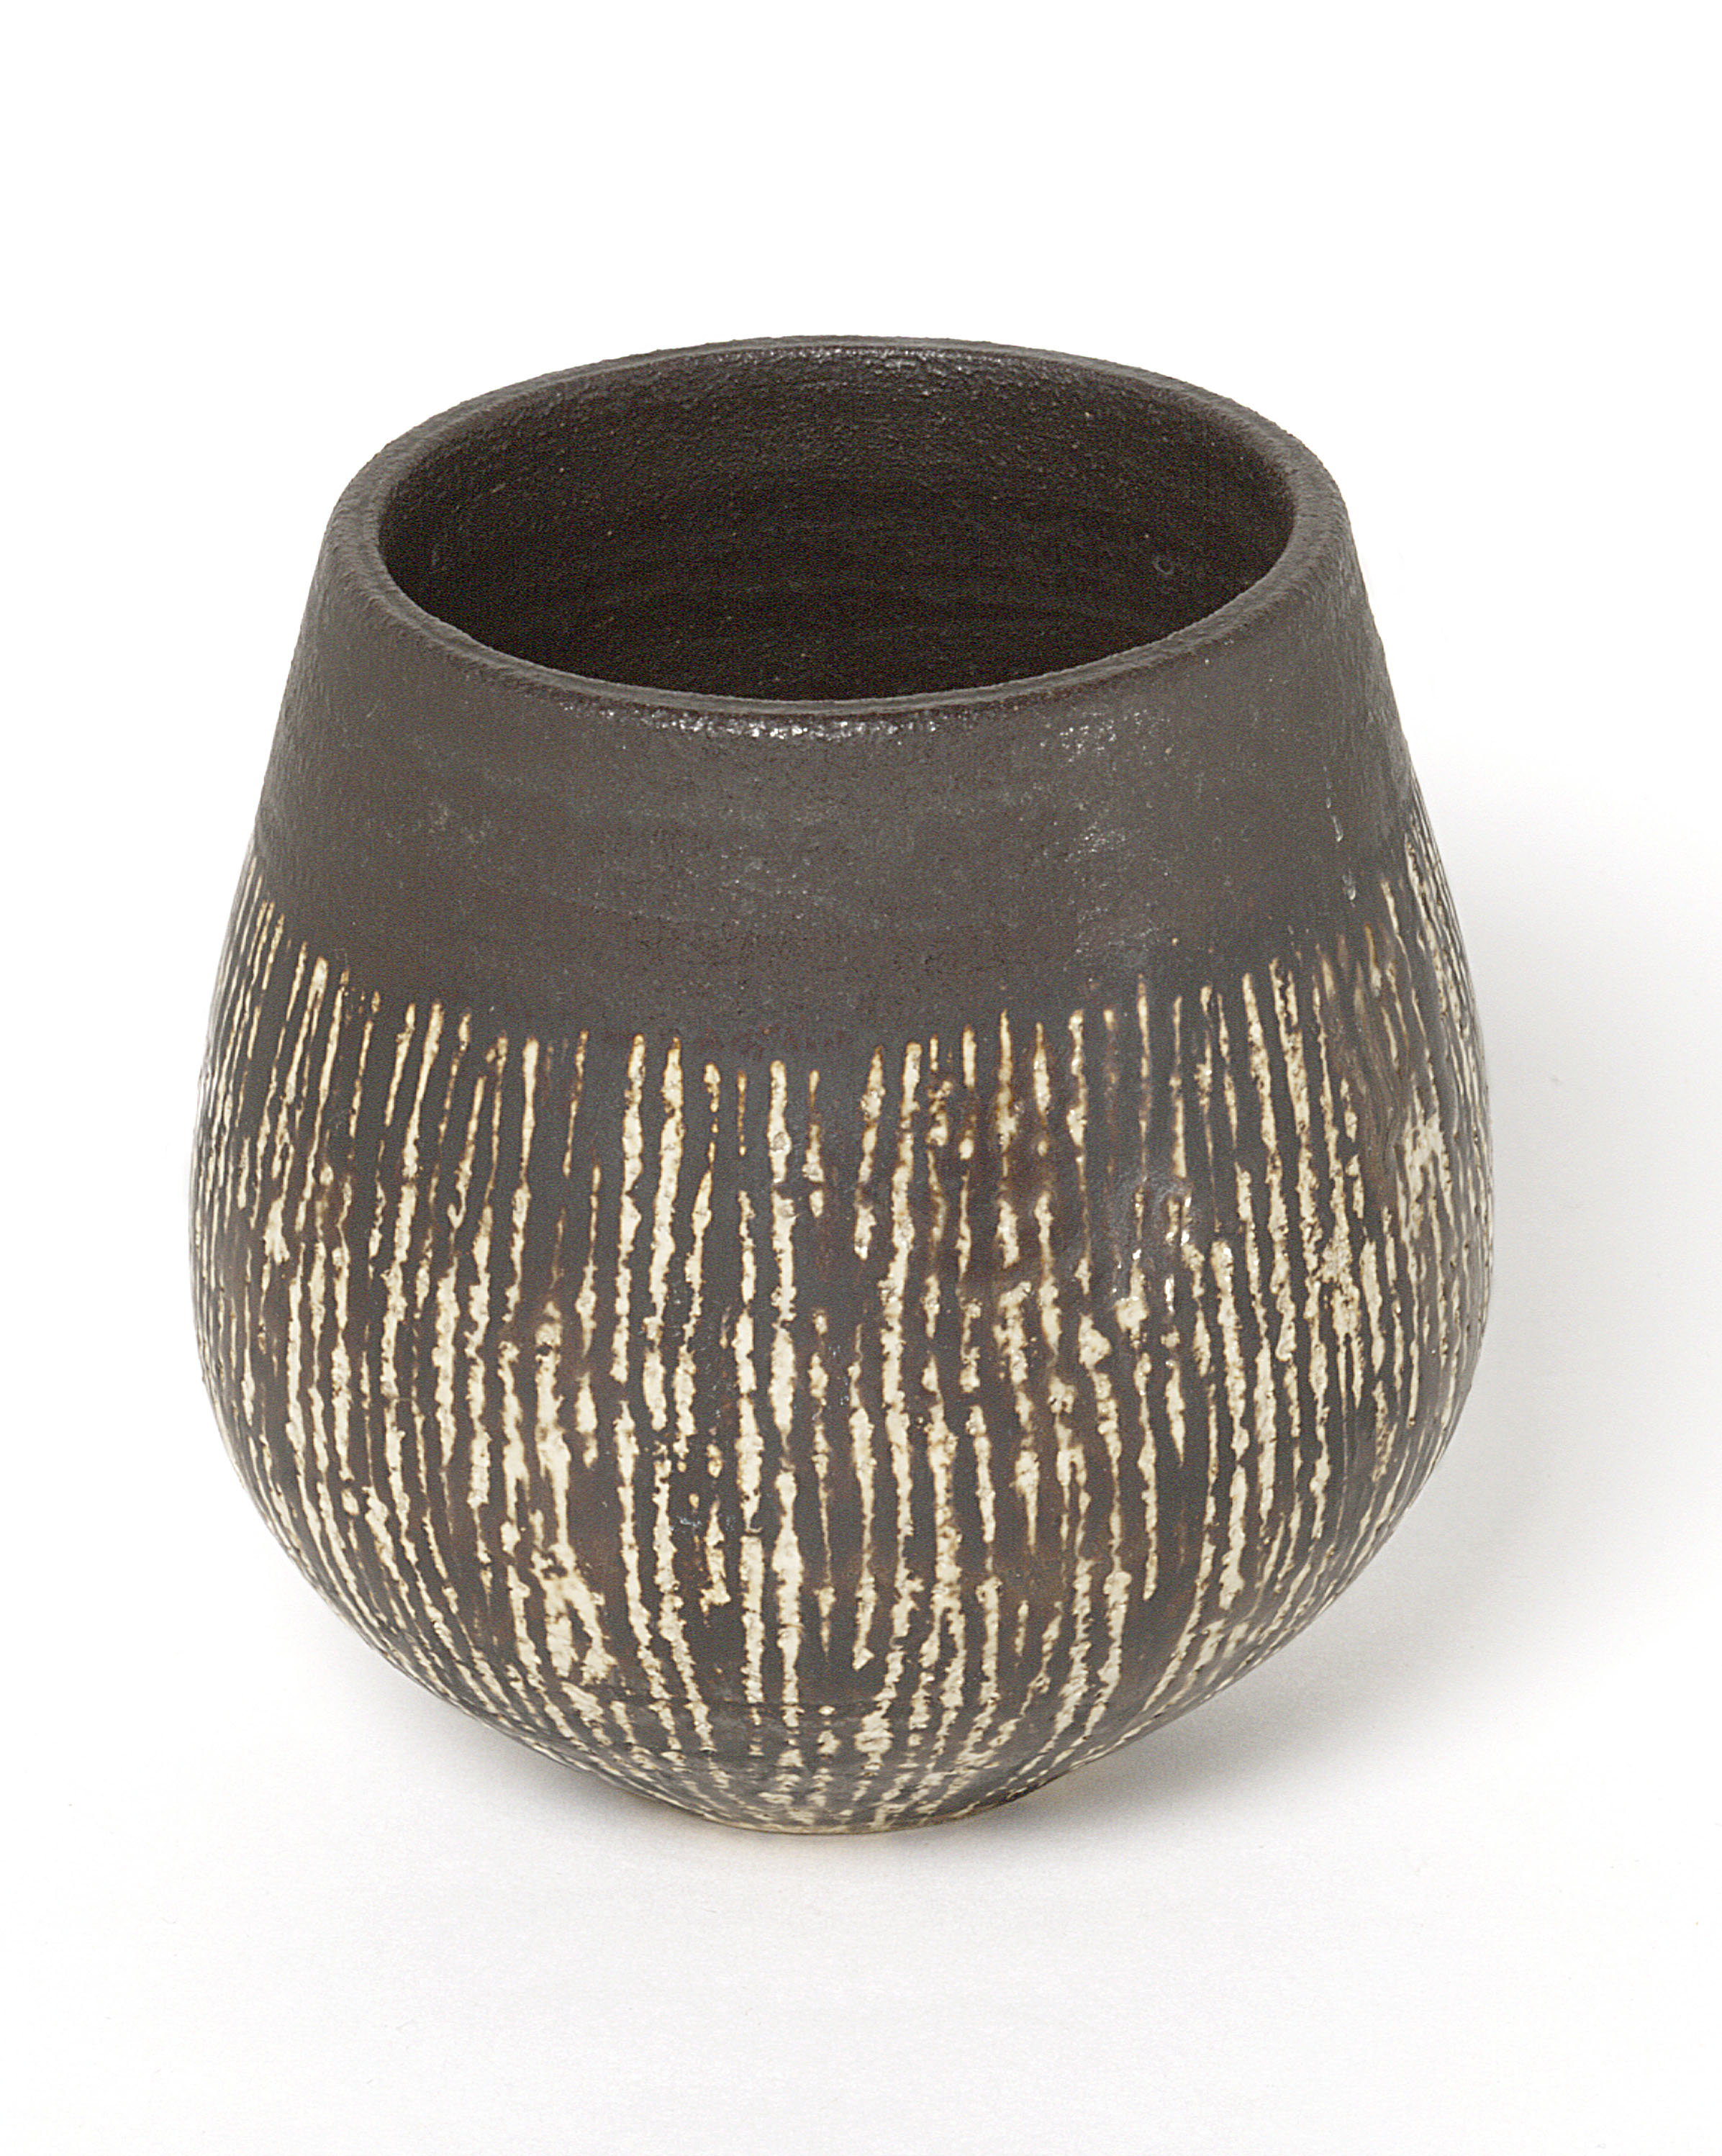 LUCIE RIE, EARTHENWARE POT